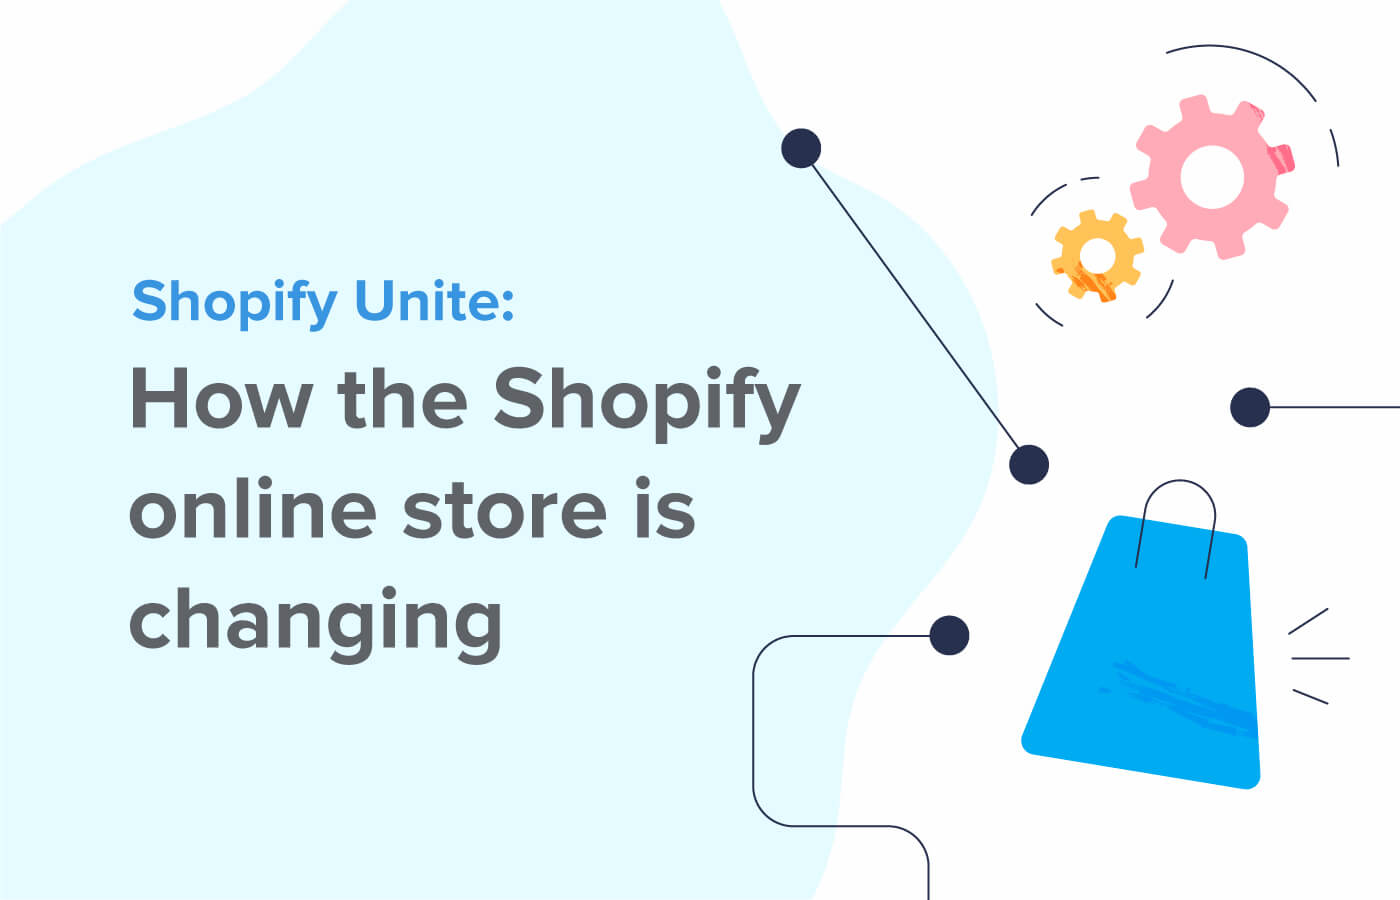 How the Shopify online store is changing - Shopify Unite insights